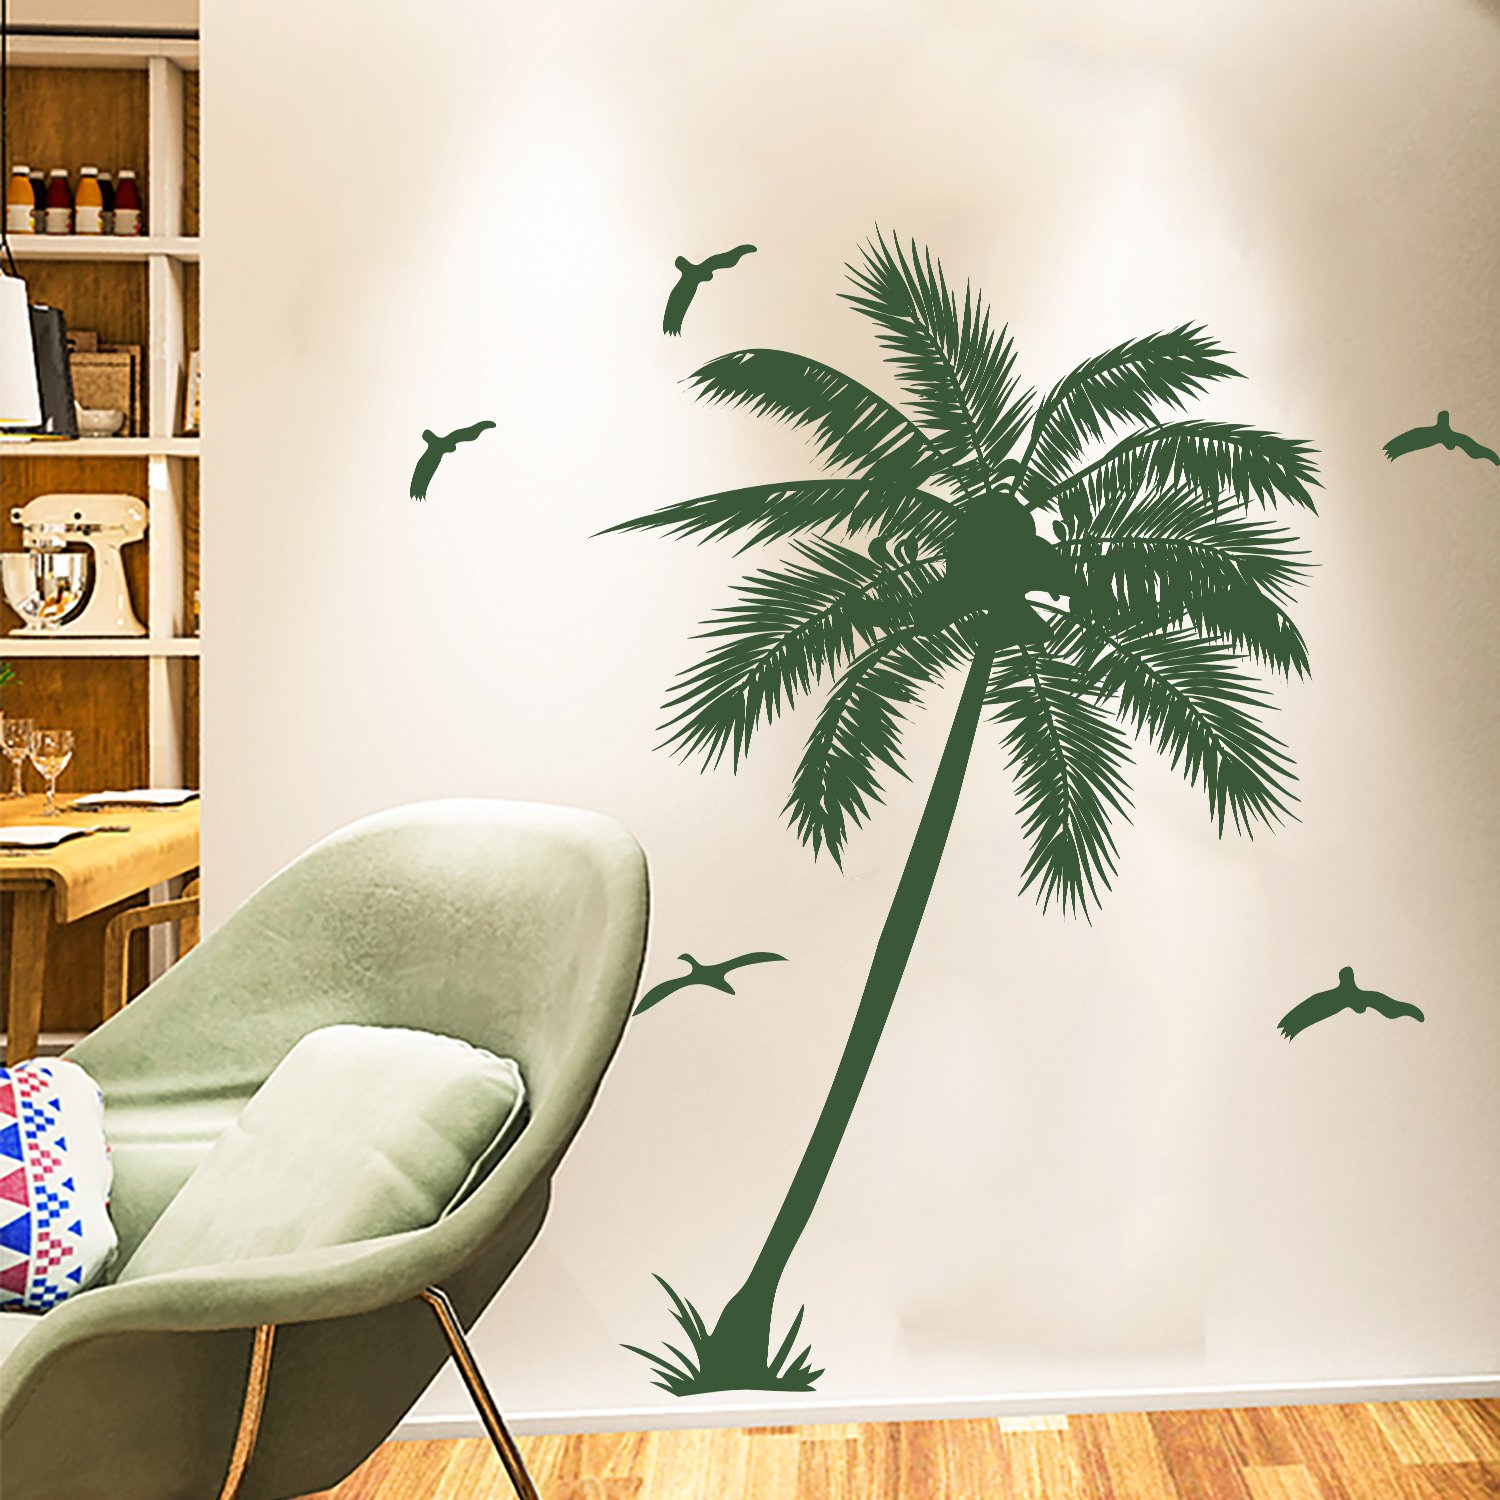 Amazon.com: DecalMile Palm Tree Wall Decals Decorative Removable ...